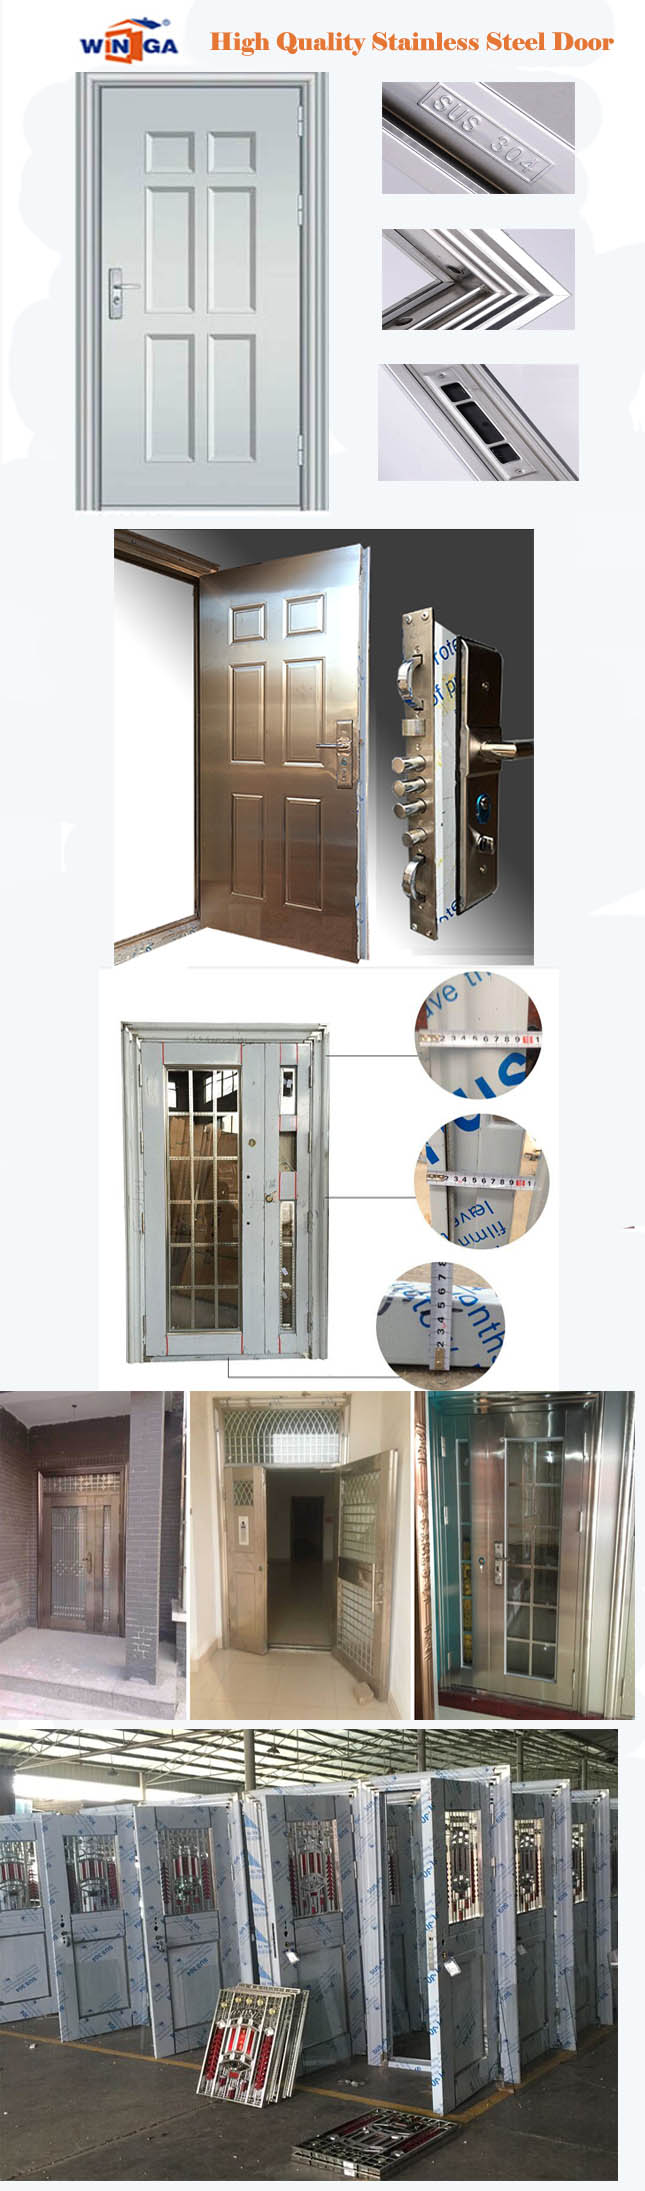 Middle East Market Stainless Steel Security Metal Door (W-GH-21)